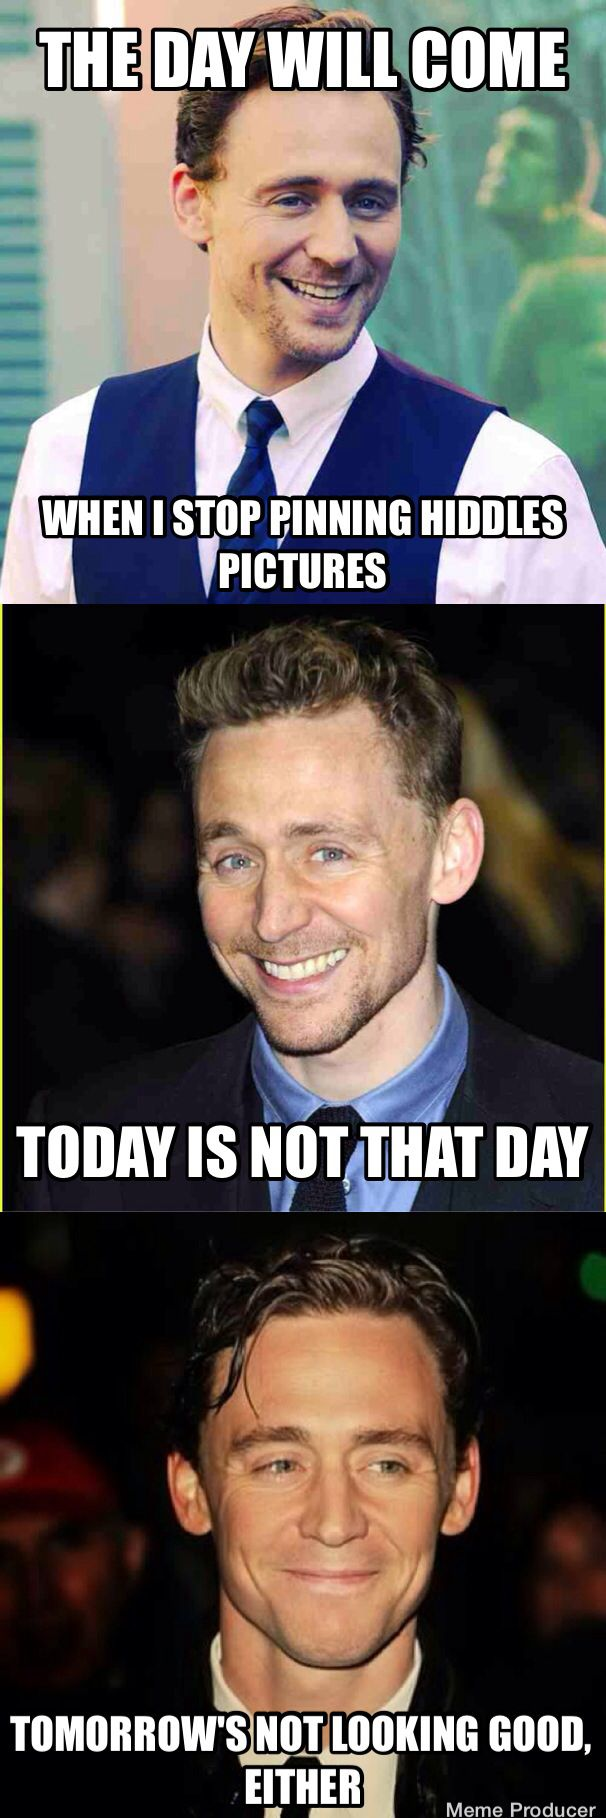 I don't think there will ever be a day I don't pin Hiddles. How can you not pin him?!